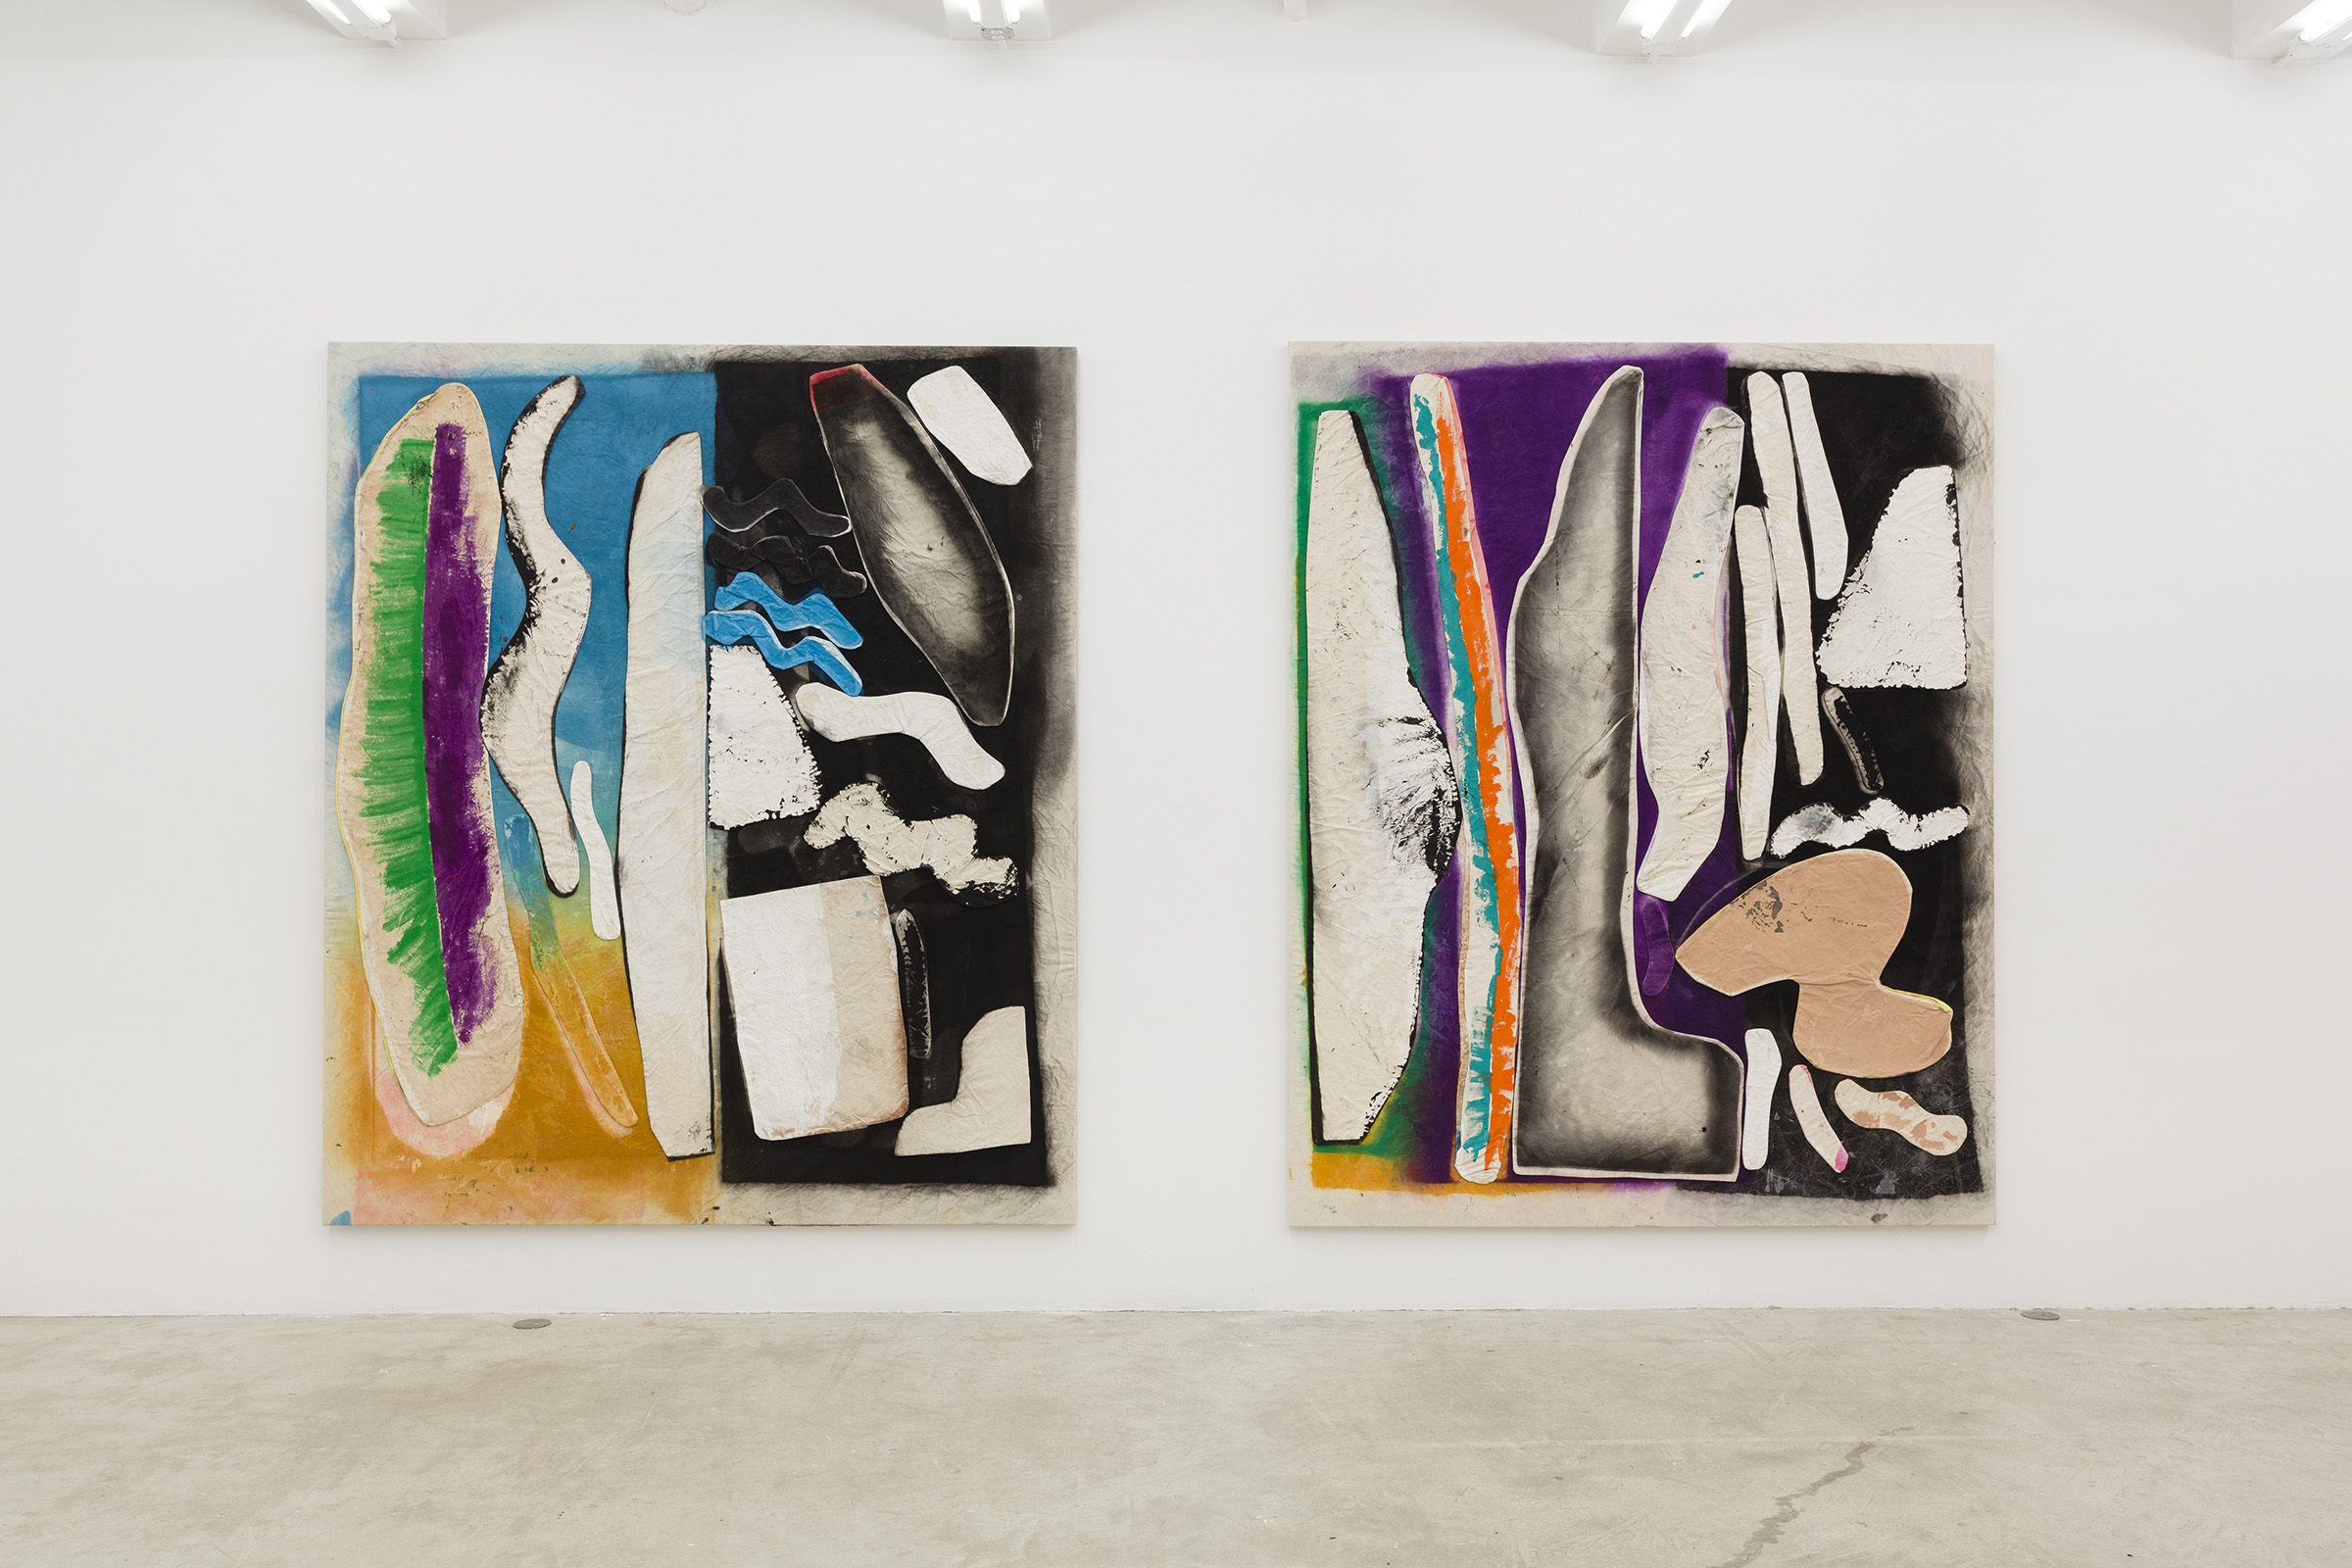 10 - Jess Fuller at Martos Gallery New York